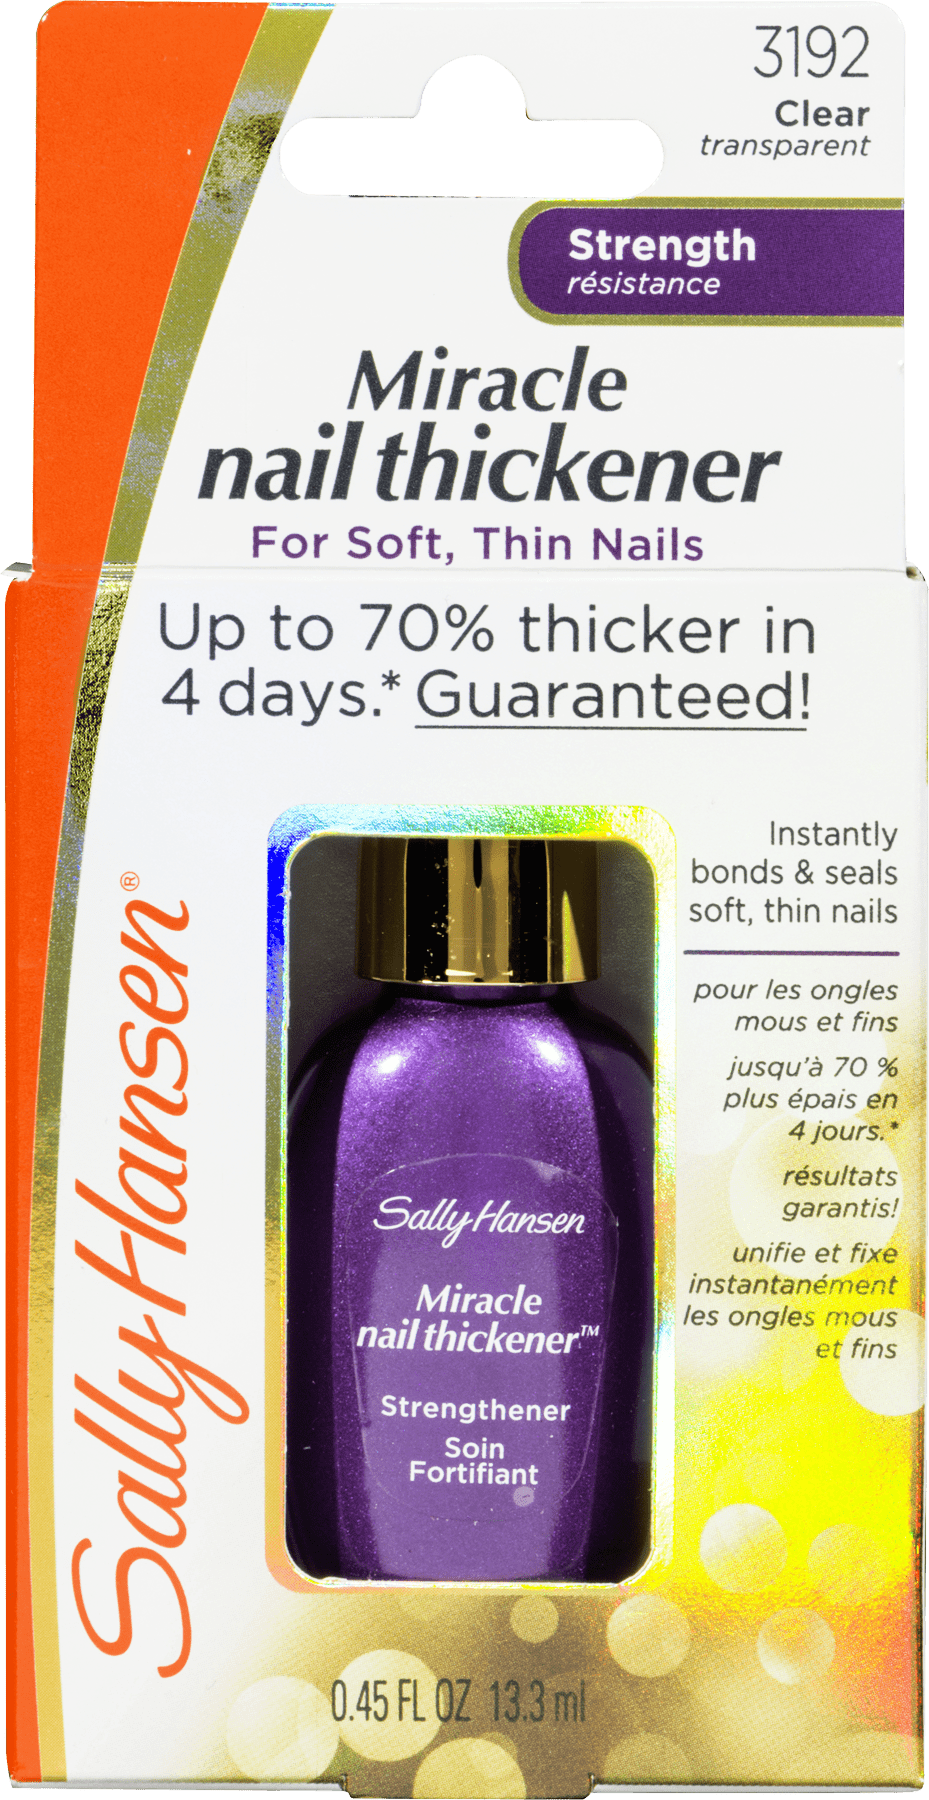 Sally Hansen Miracle Nail Thickener Strength 3192 Clear, 0.45 FL OZ ...